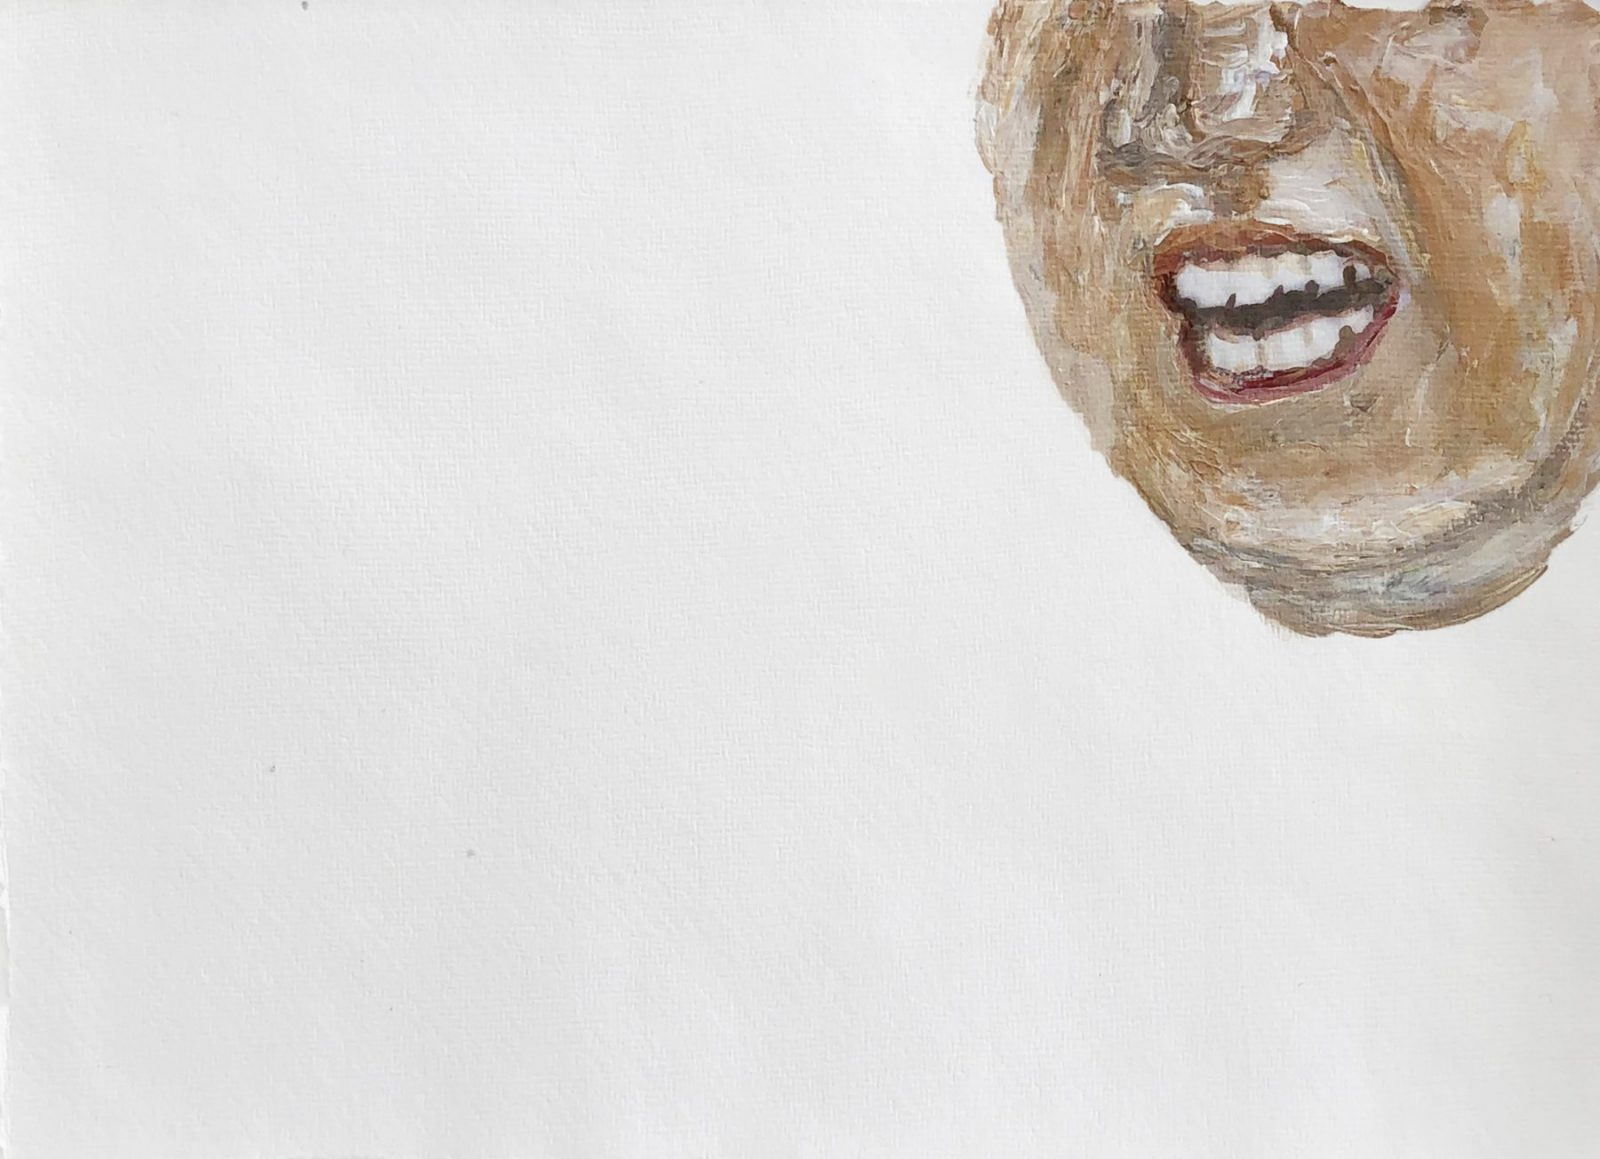 Clemens Krauss 'Laughing Fourth' (From the series '2017-2021'), 2020, acrylic on paper, framed, 27 x 36 cm